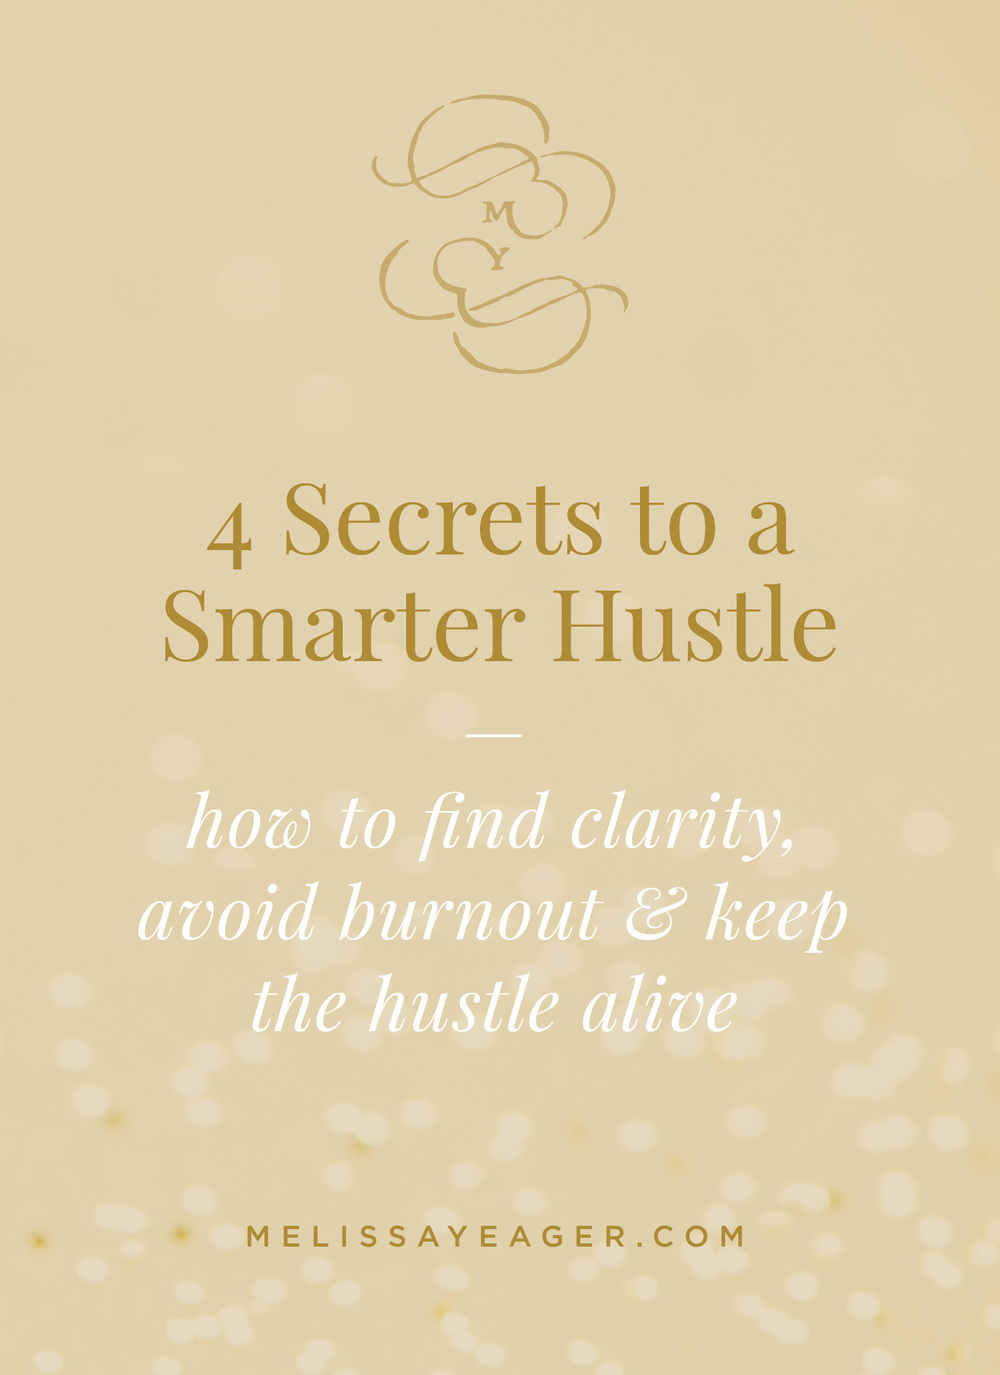 4 Secrets to a Smarter Hustle: how to find clarity, avoid burnout & keep the hustle alive